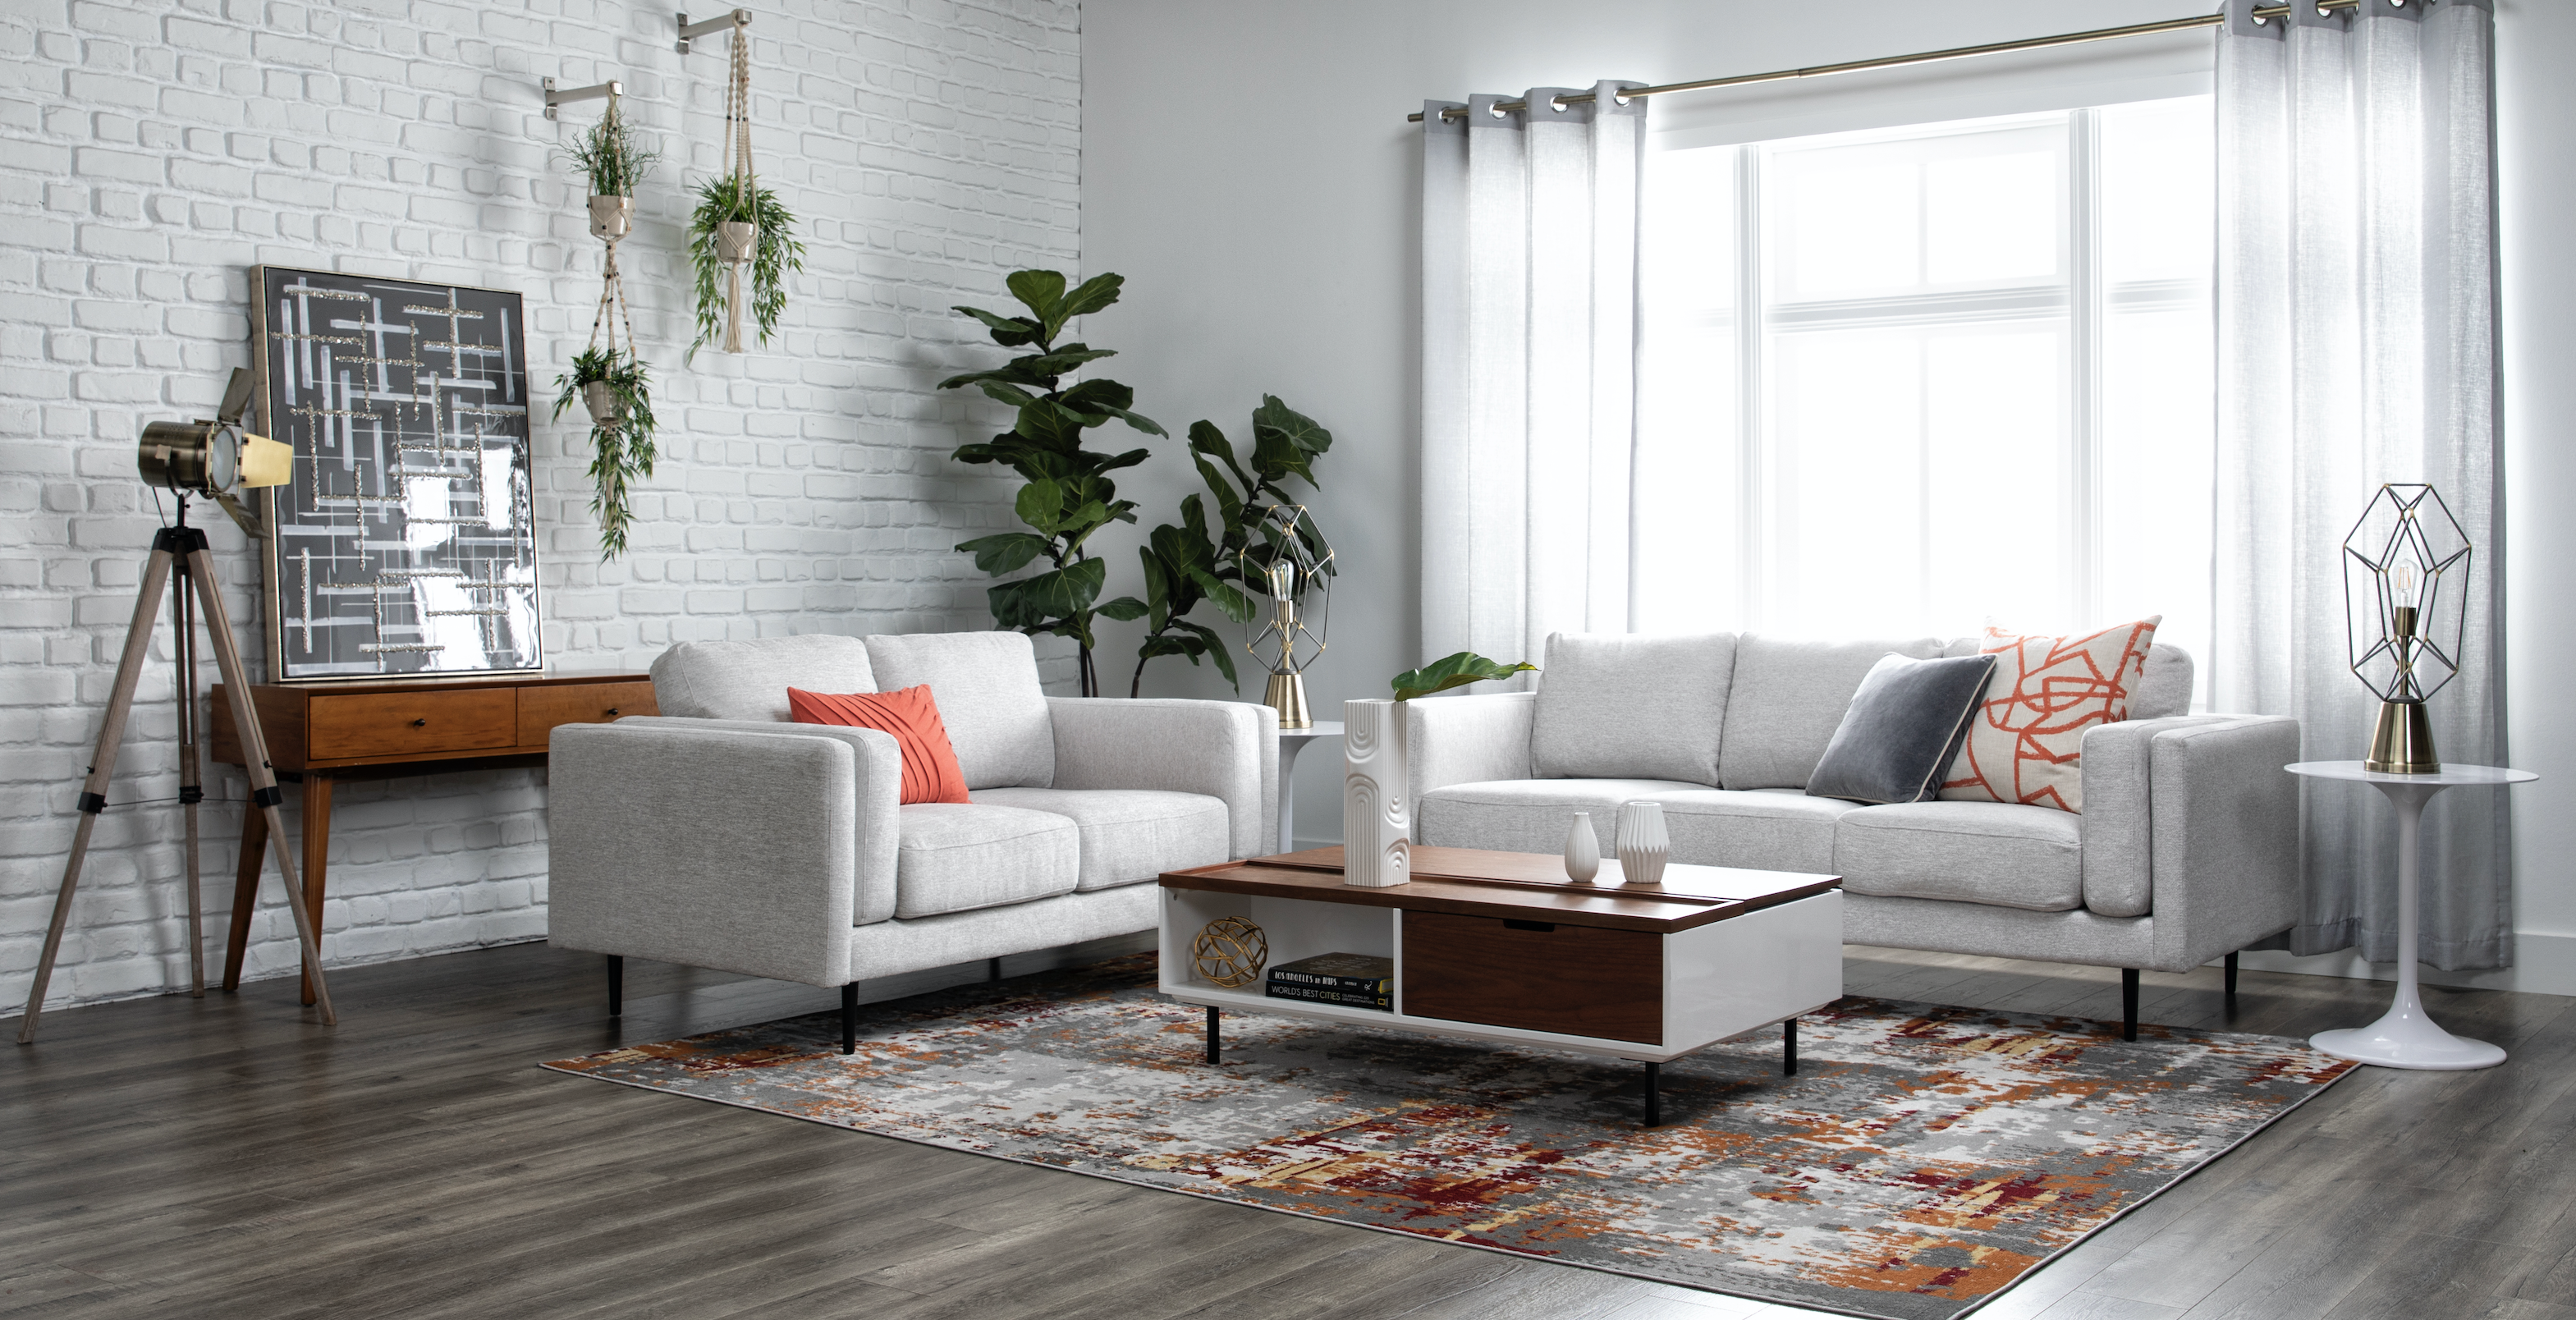 Aquarius Ii Light Grey Sofa In 2020 Grey Sofa Living Room Living Room Decor Lights Light Gray Sofas